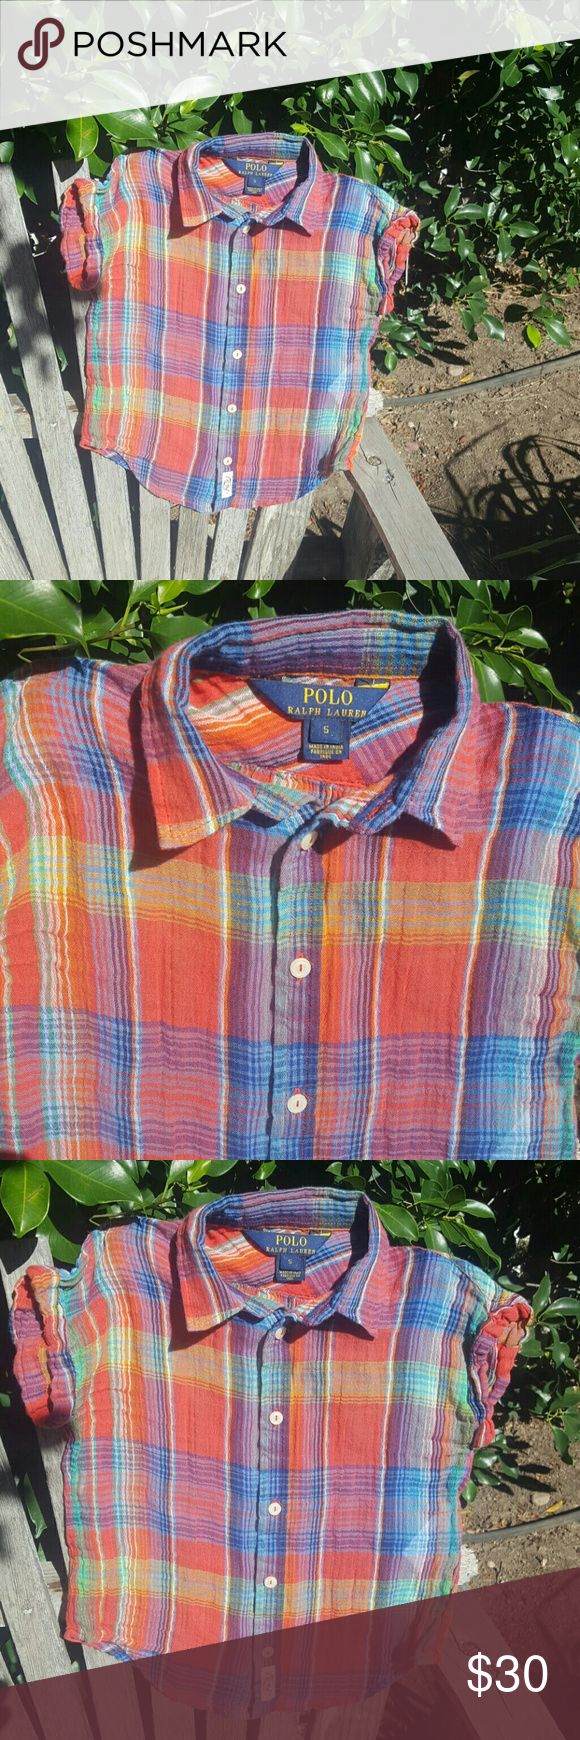 Polo by Ralph Lauren for kids shirt Polo by Ralp Lauren for kids shirt . Really pretty and colorful great with a cute denim skirt ... Polo by Ralph Lauren Shirts & Tops Blouses